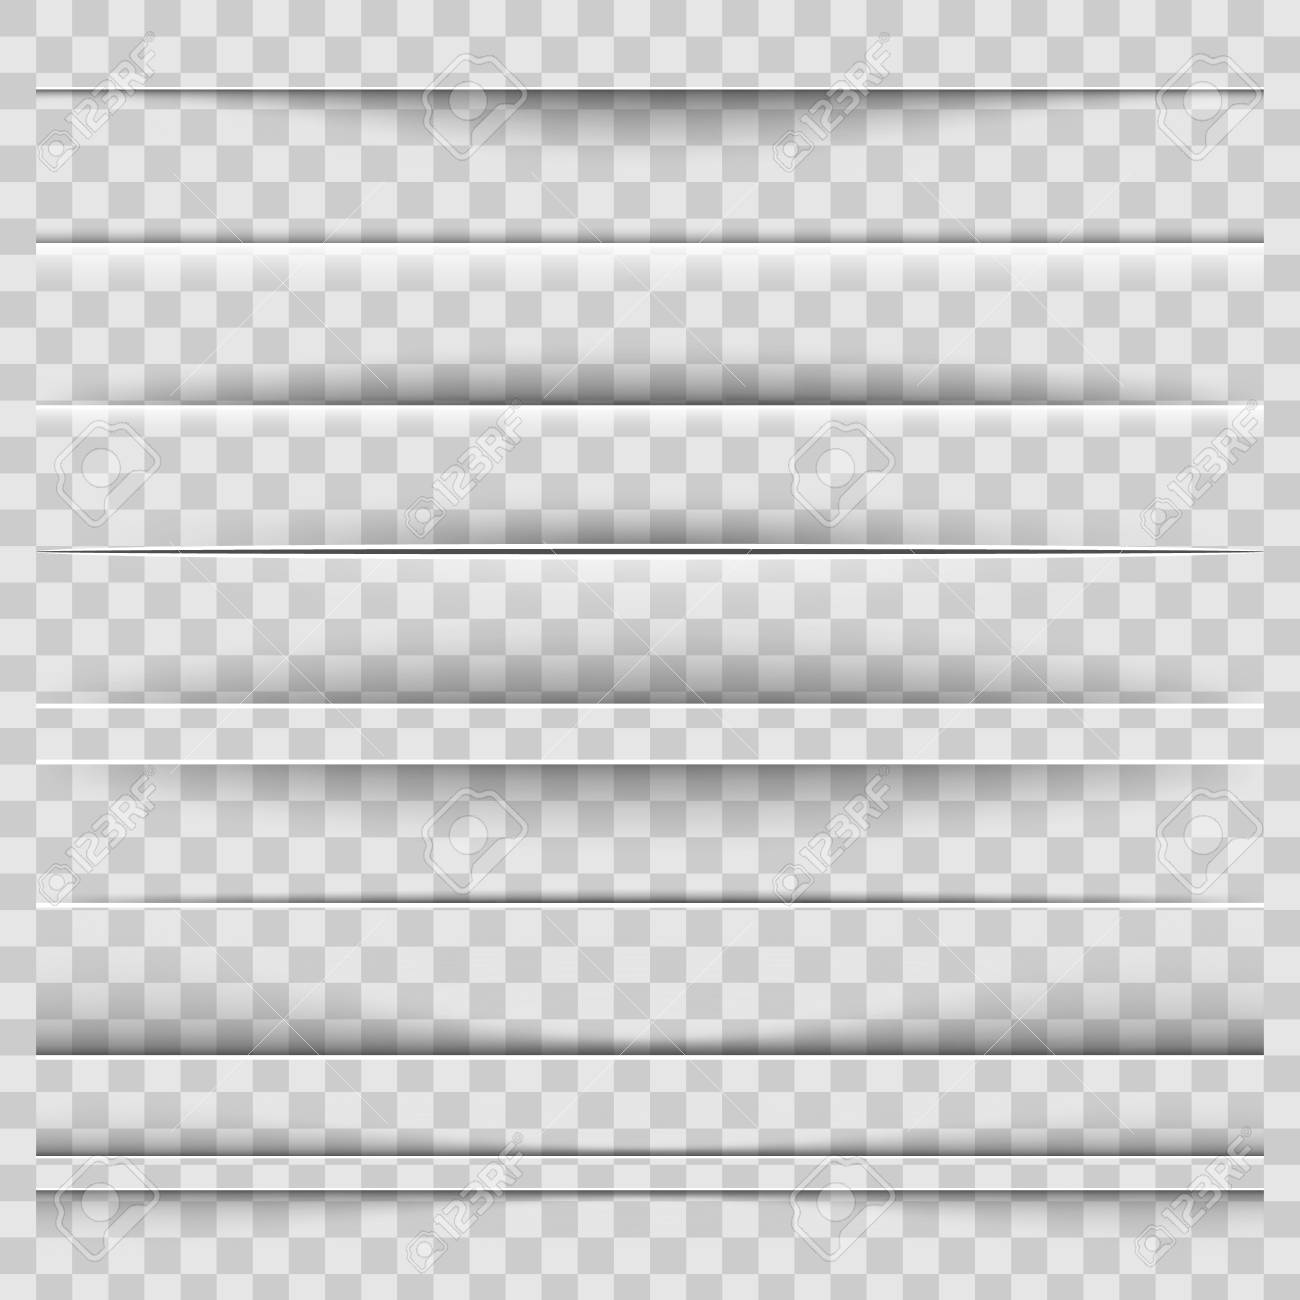 Creative vector illustration of realistic paper shadow dividers isolated on transparent background. Art design effect set. Abstract concept graphic element - 102521858